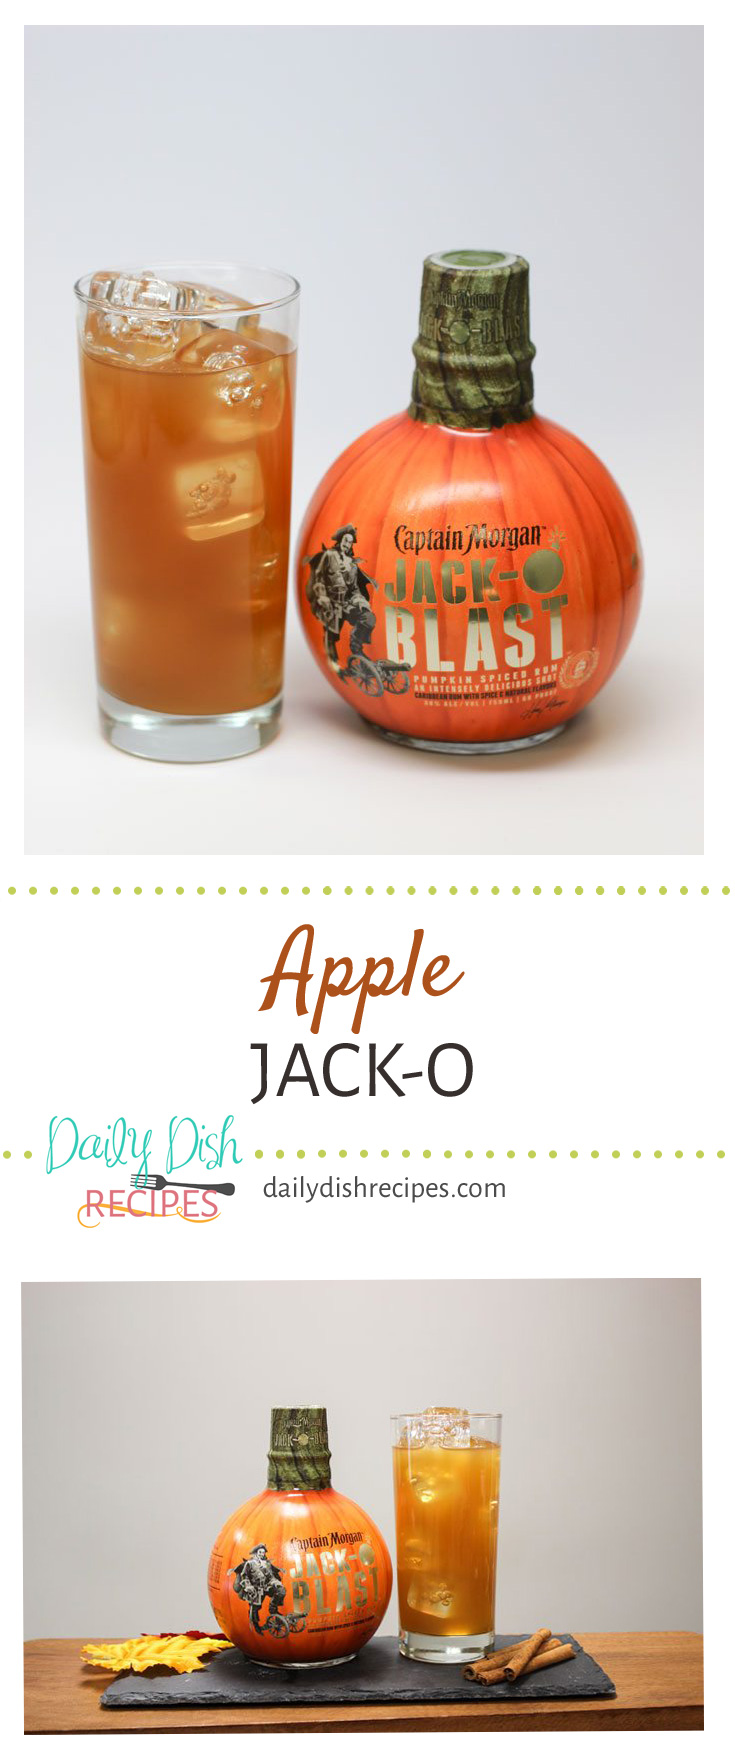 It's Apple. It's Pumpkin. It's Spiced. And it's the perfect Fall drink to unwind at the end of the day. Forget the wine, reach for a glass ofApple Jack-O. It is made with Captain Morgan's Limited Edition Jack-O'Blast and tastes oh, so good!